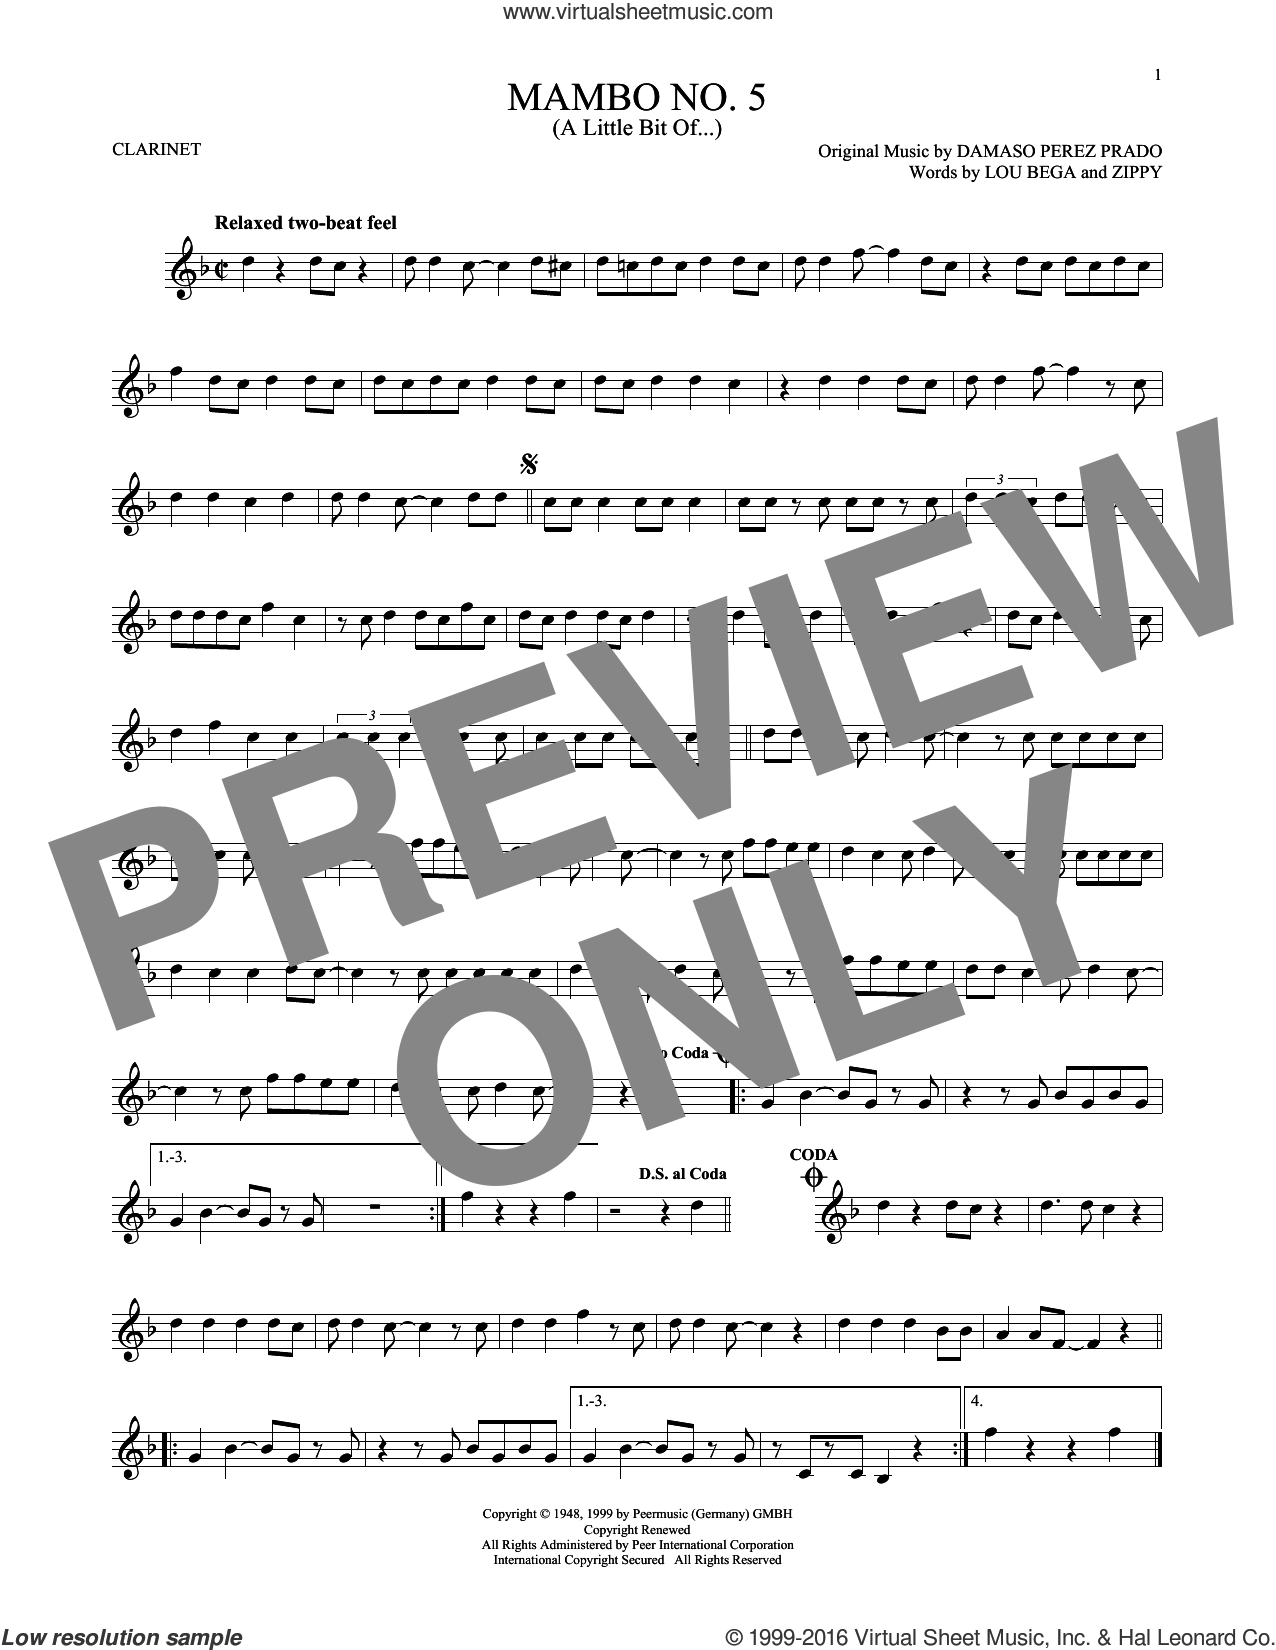 Mambo No. 5 (A Little Bit Of...) sheet music for clarinet solo by Lou Bega and Damaso Perez Prado, intermediate. Score Image Preview.